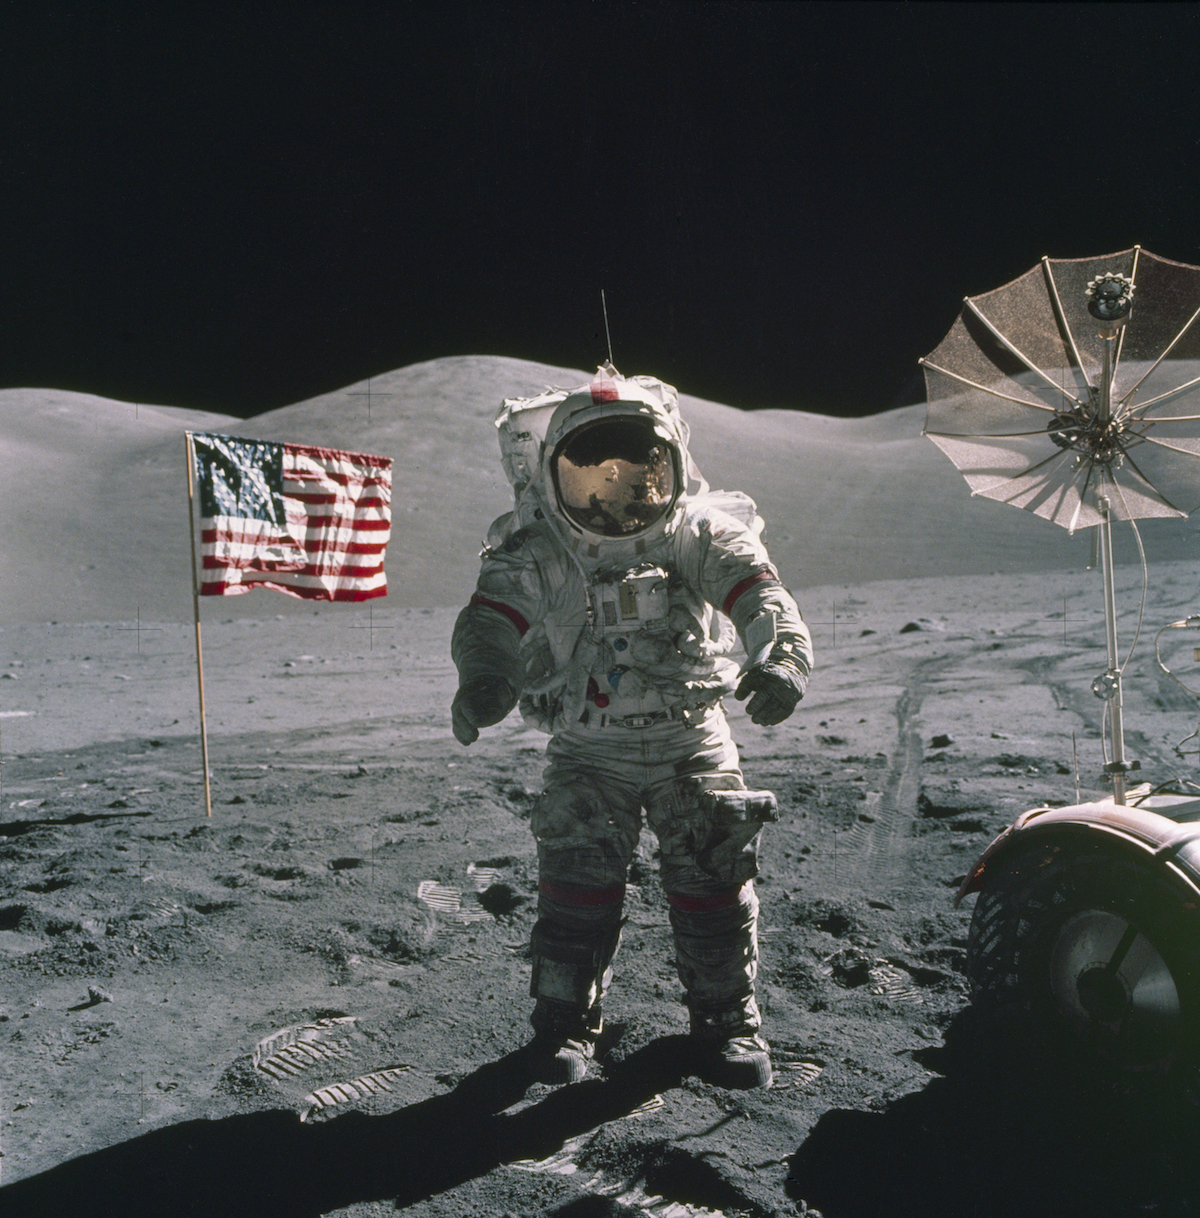 astronaut standing on the lunar surface by flag and rover